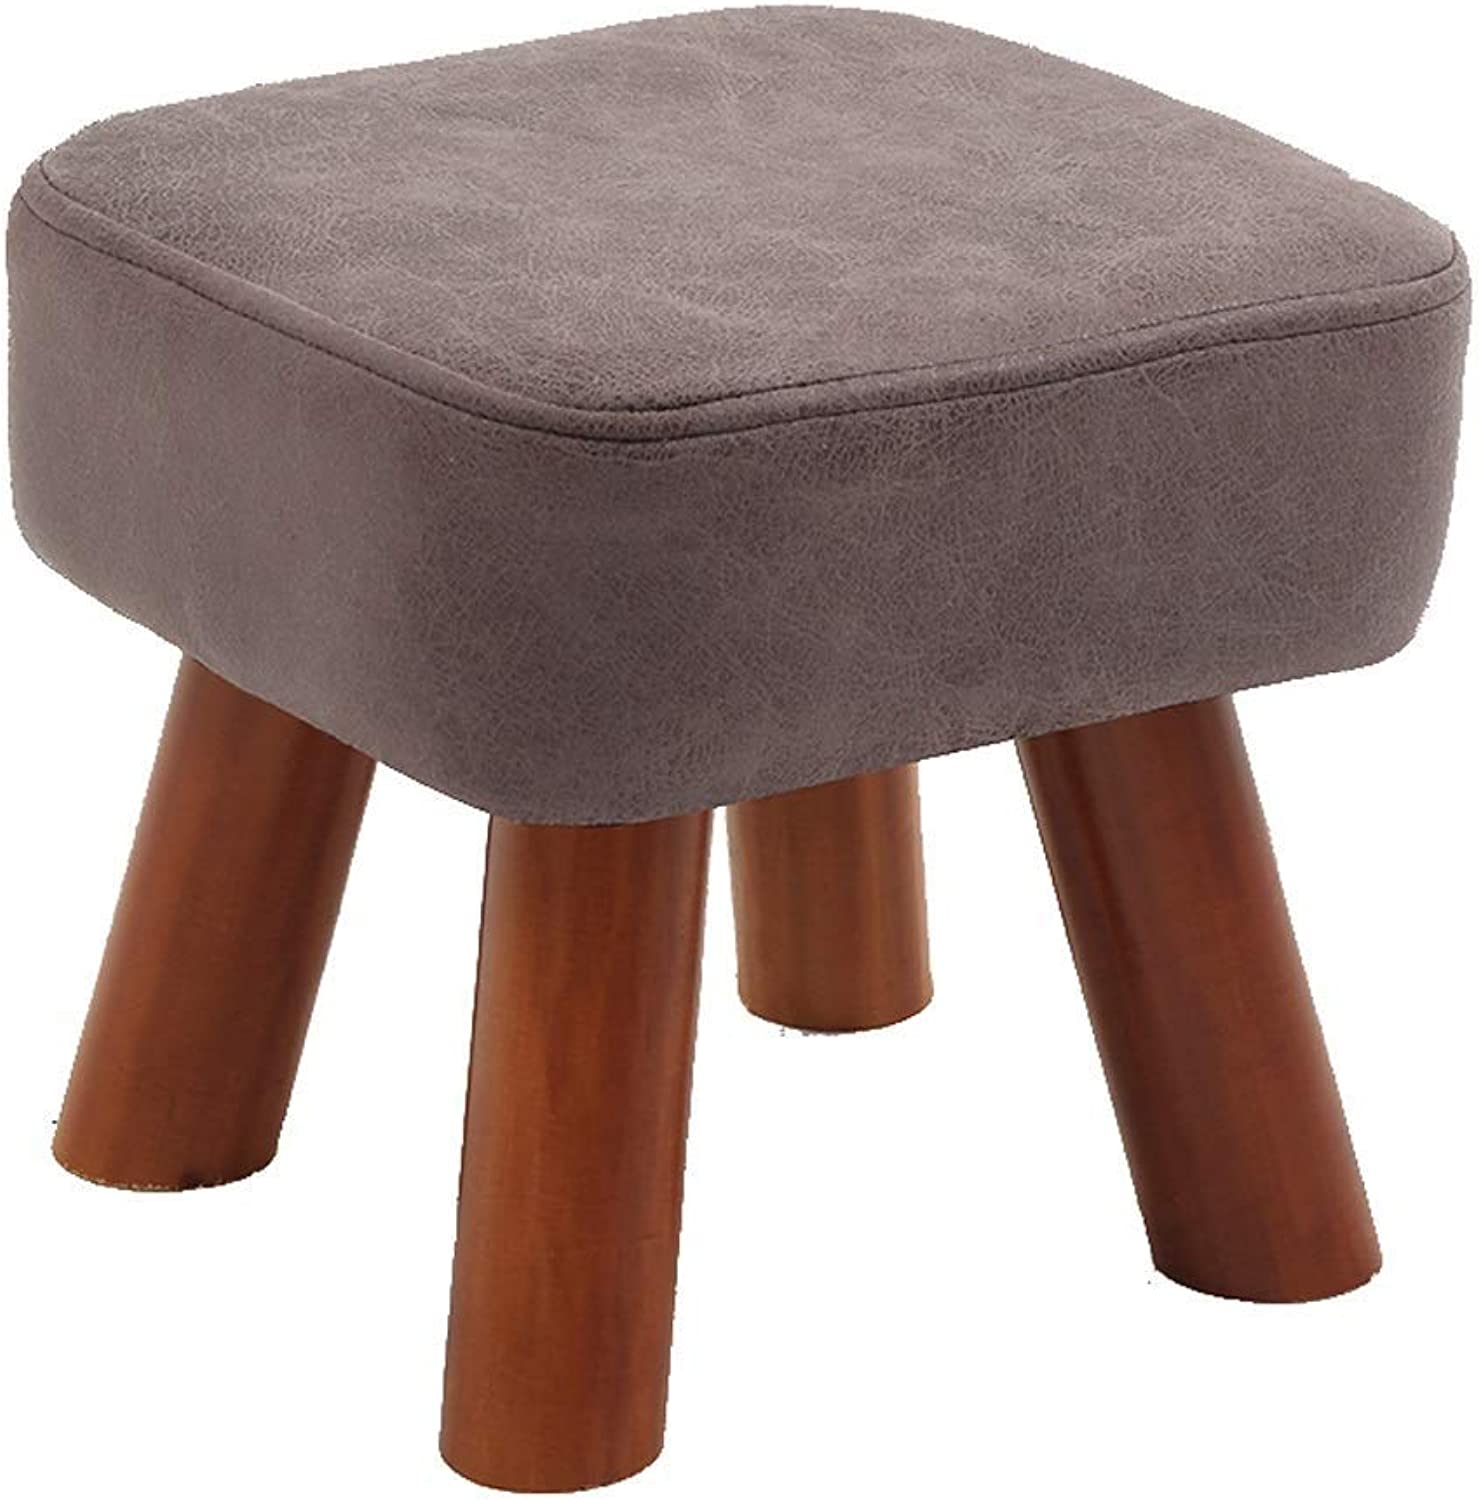 European Chair Change shoes Stool Solid Wood Stool Sofa Stool Coffee Table Wear shoes Sit GMING (color   B)